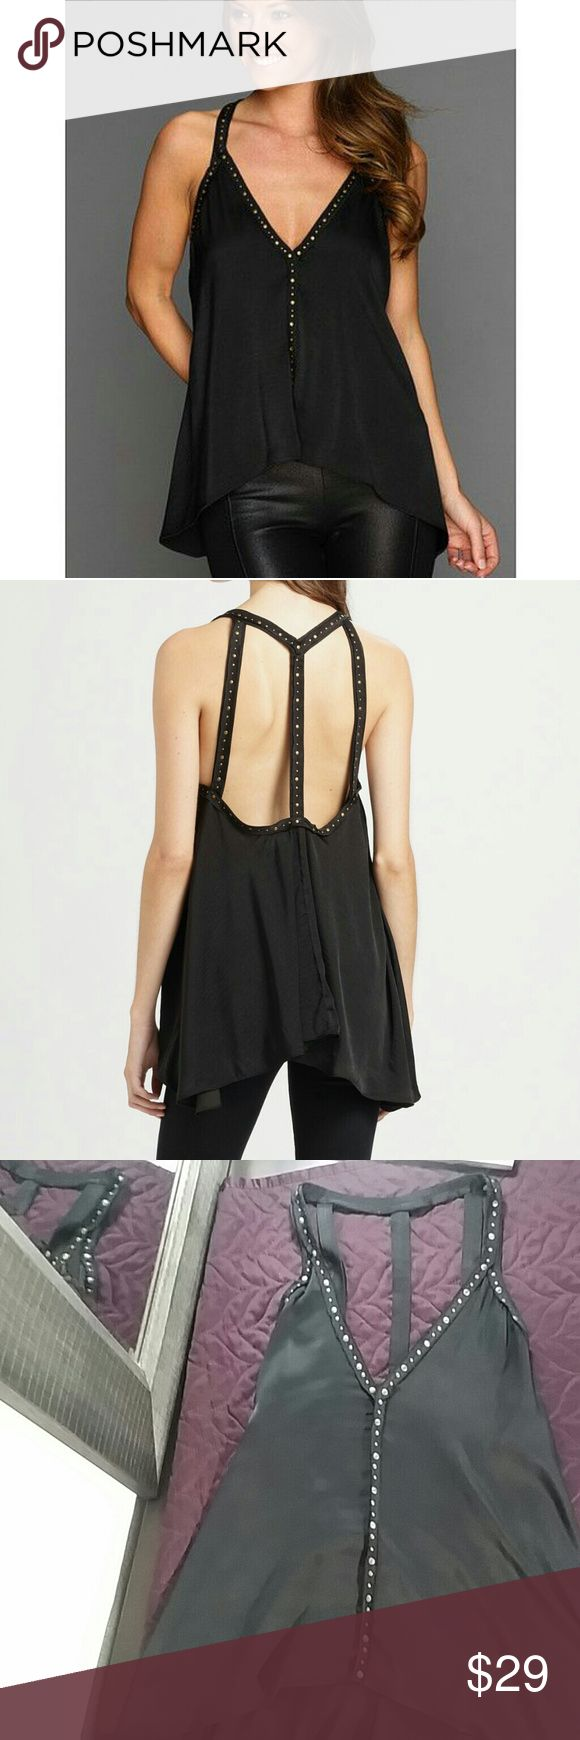 BCBGMAXAZRIA WOMENS V-NECK STUDDED OPEN BACK TOP Shimmering v-neck with an open back, a contoured hem and edgy-chic studded trim. V-neck Sleeveless Studded trim Contoured hem Exposed back Polyester Dry clean Imported MSRP $178.00 Model: Abbey BCBGMaxAzria Tops Blouses